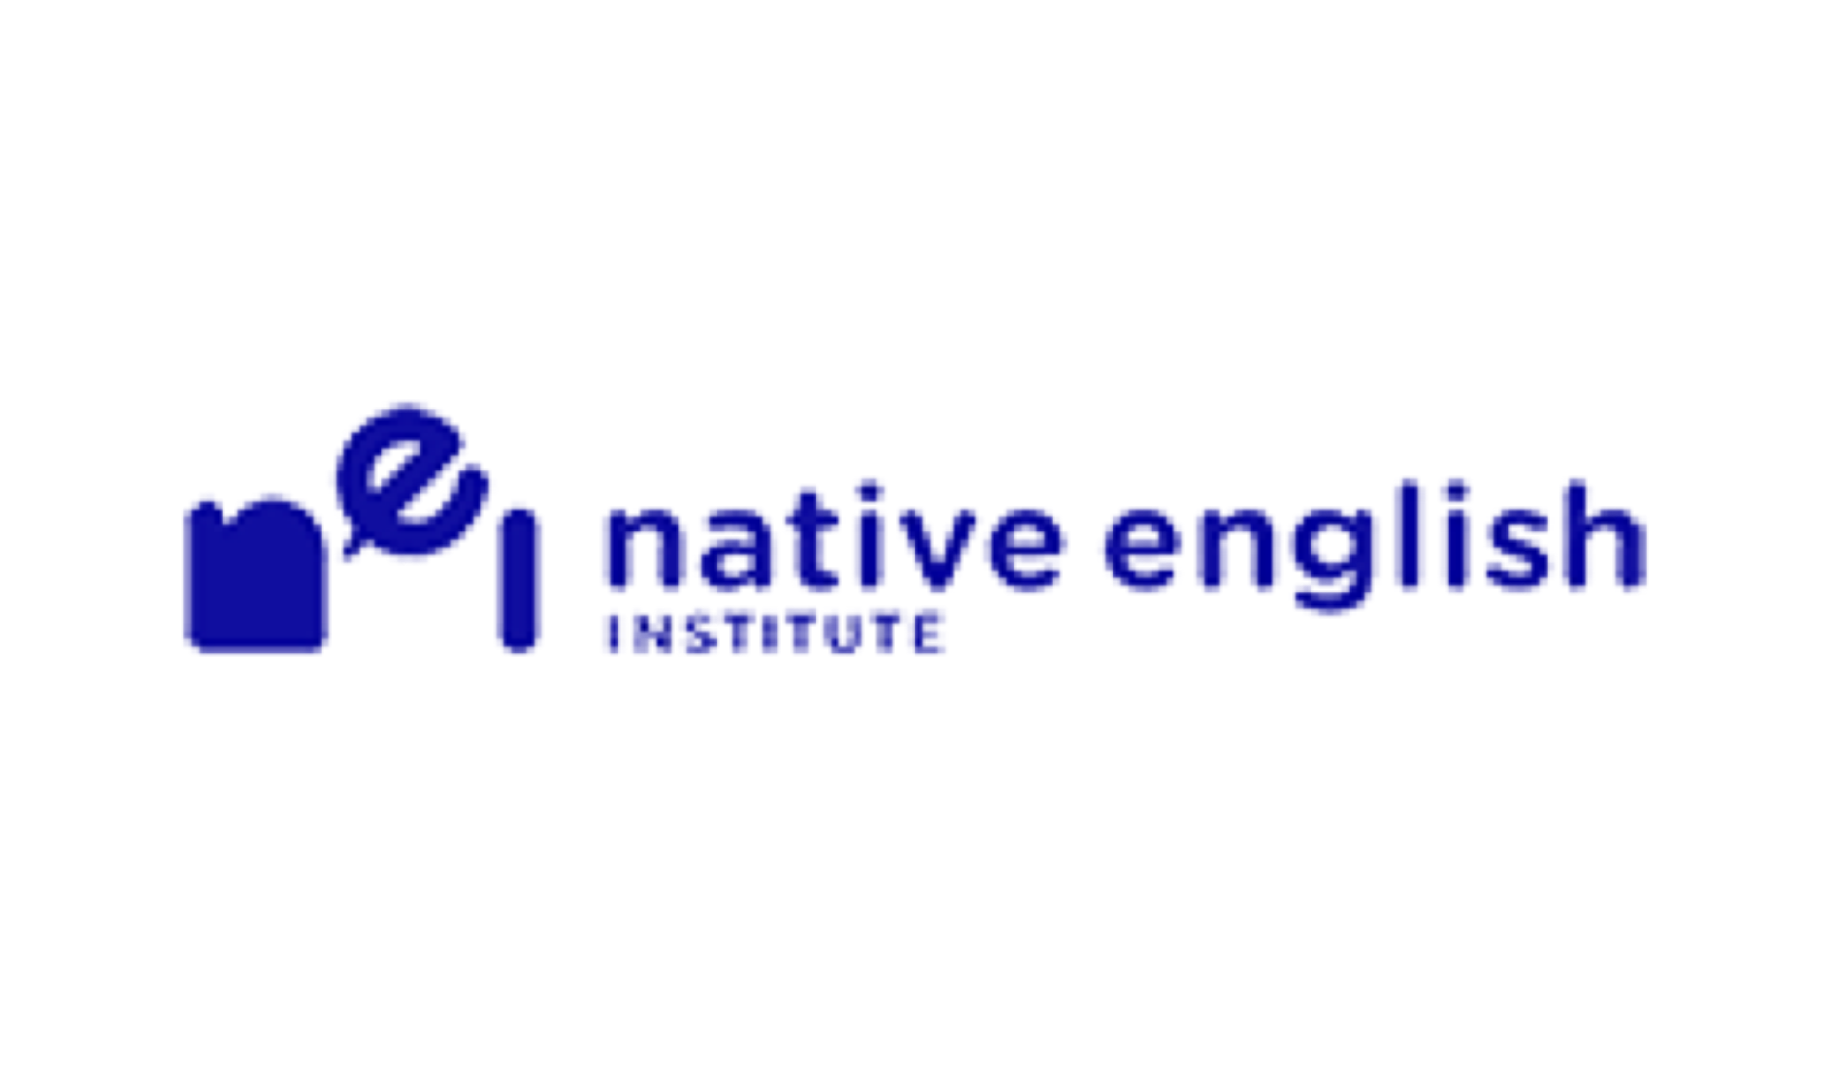 Native English Institute